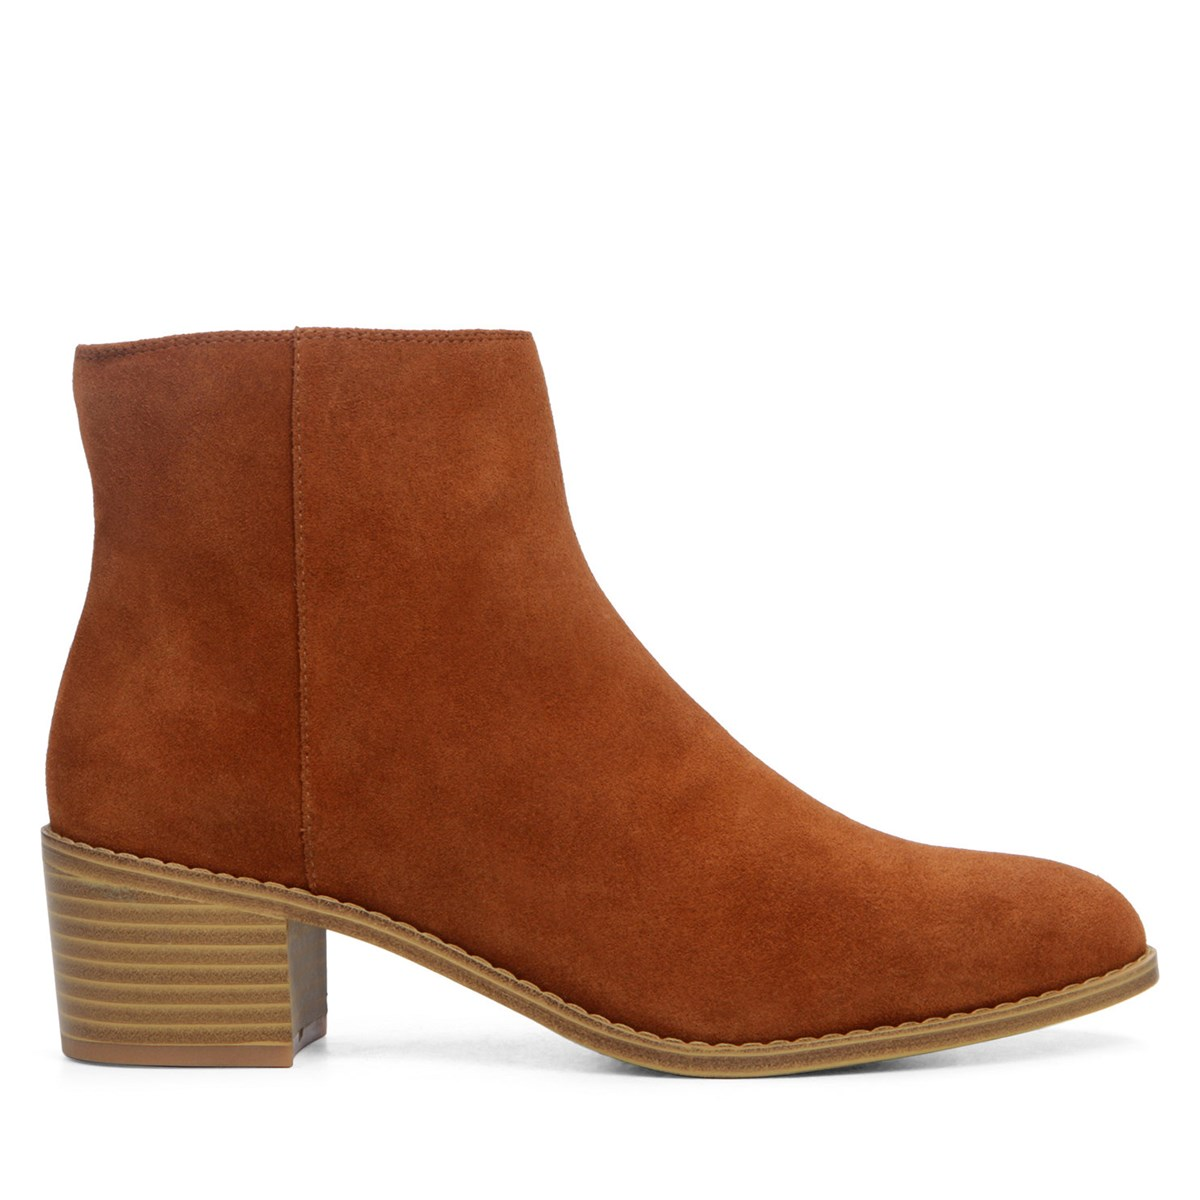 Women's Breccan Myth Camel Suede Ankle Boot